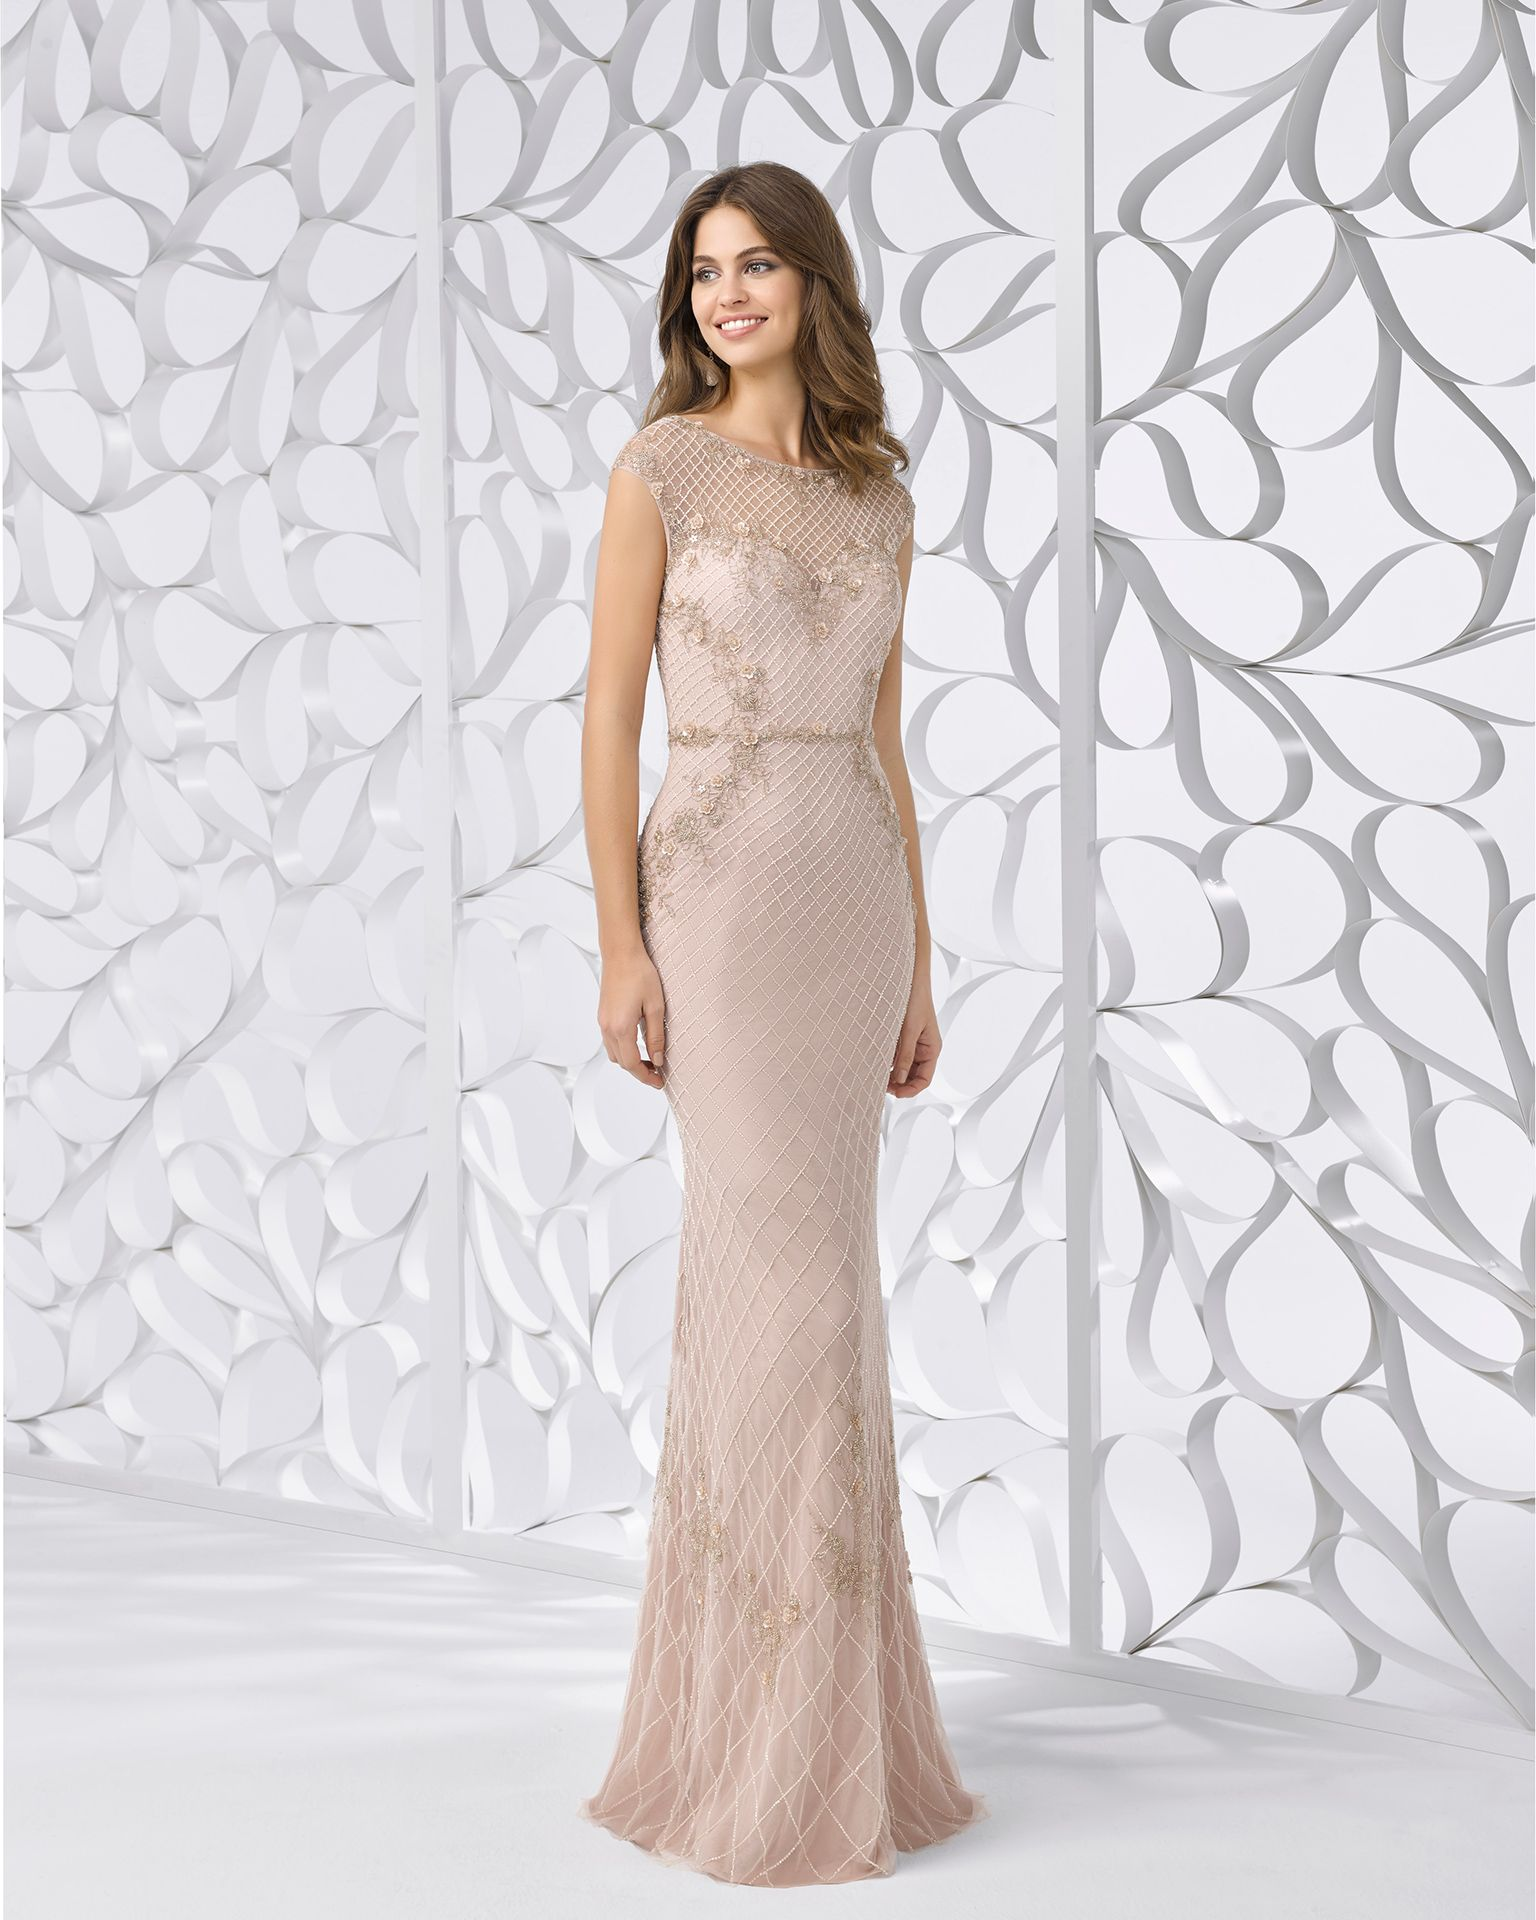 c3c3d0a2c47 Beaded embroidery cocktail dress with bateau neckline and illusion back.  Available in nude. 2018 FIESTA AIRE BARCELONA Collection.